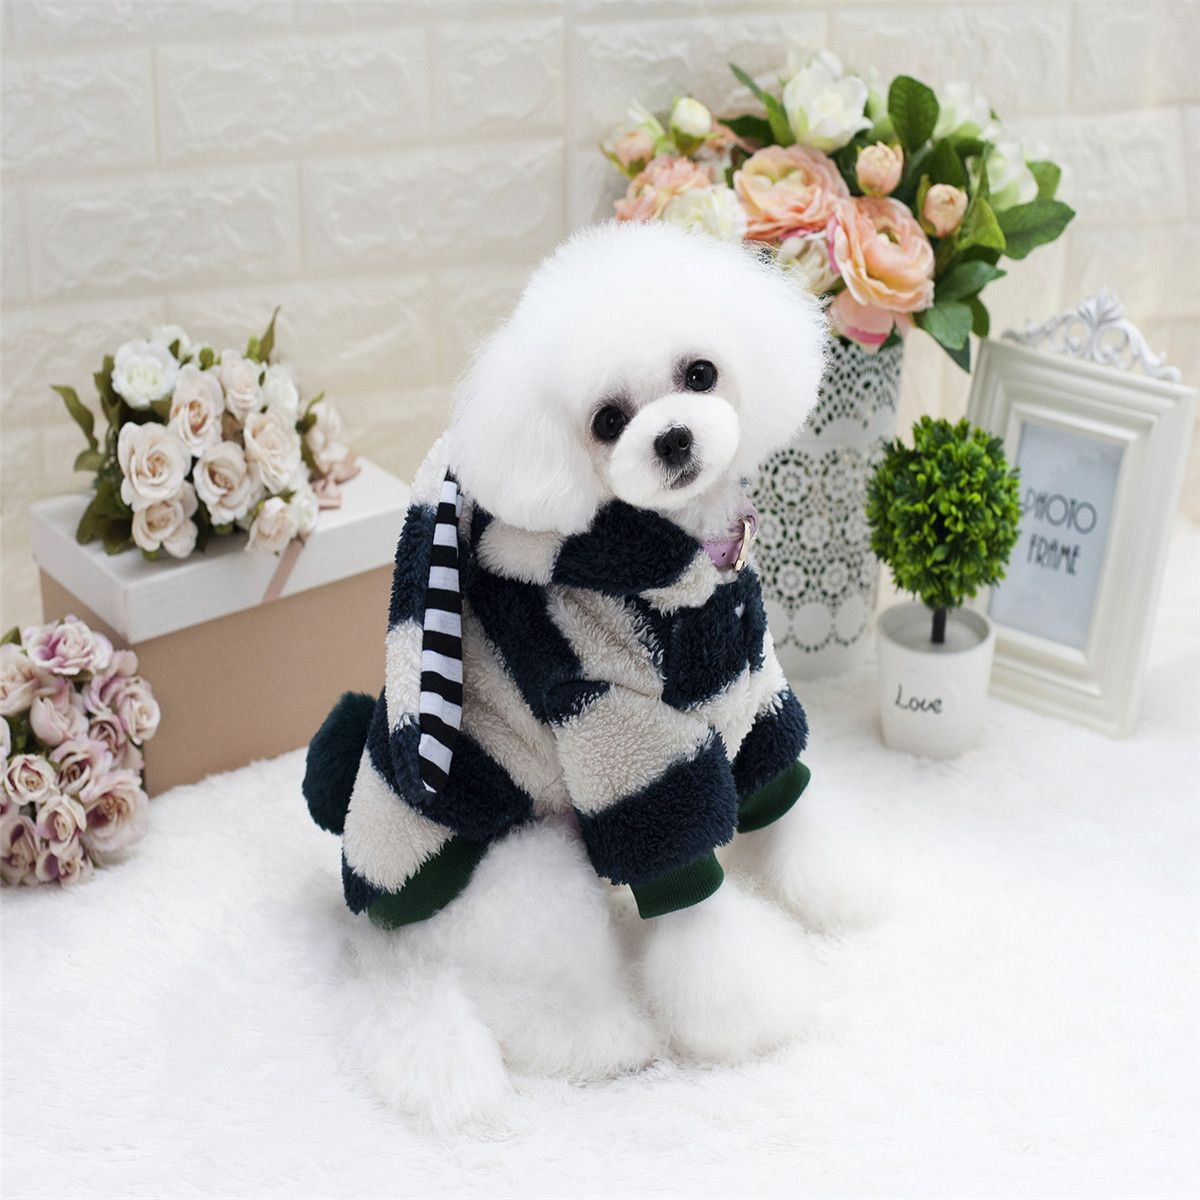 Lovoyager A03 Dog Winter High Quality Soft Thermal Coat